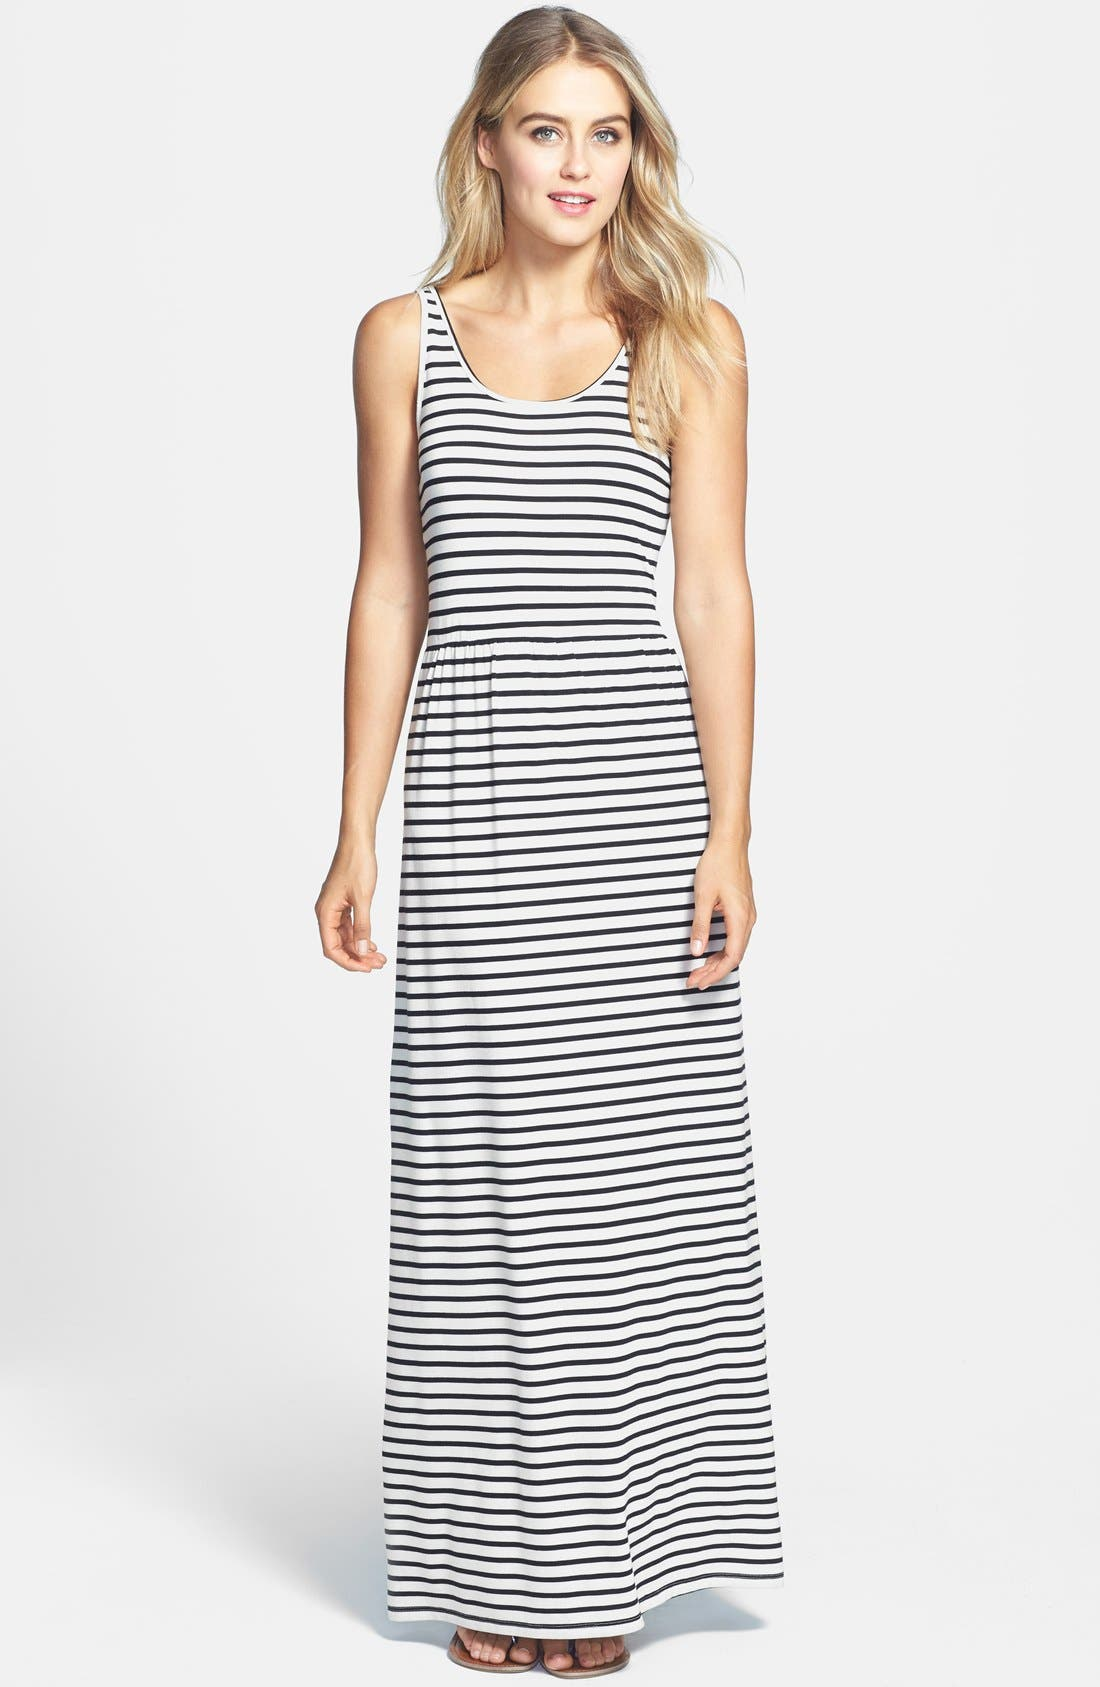 Alternate Image 1 Selected - Two by Vince Camuto 'Rising Stripe' Back Cutout Sleeveless Maxi Dress